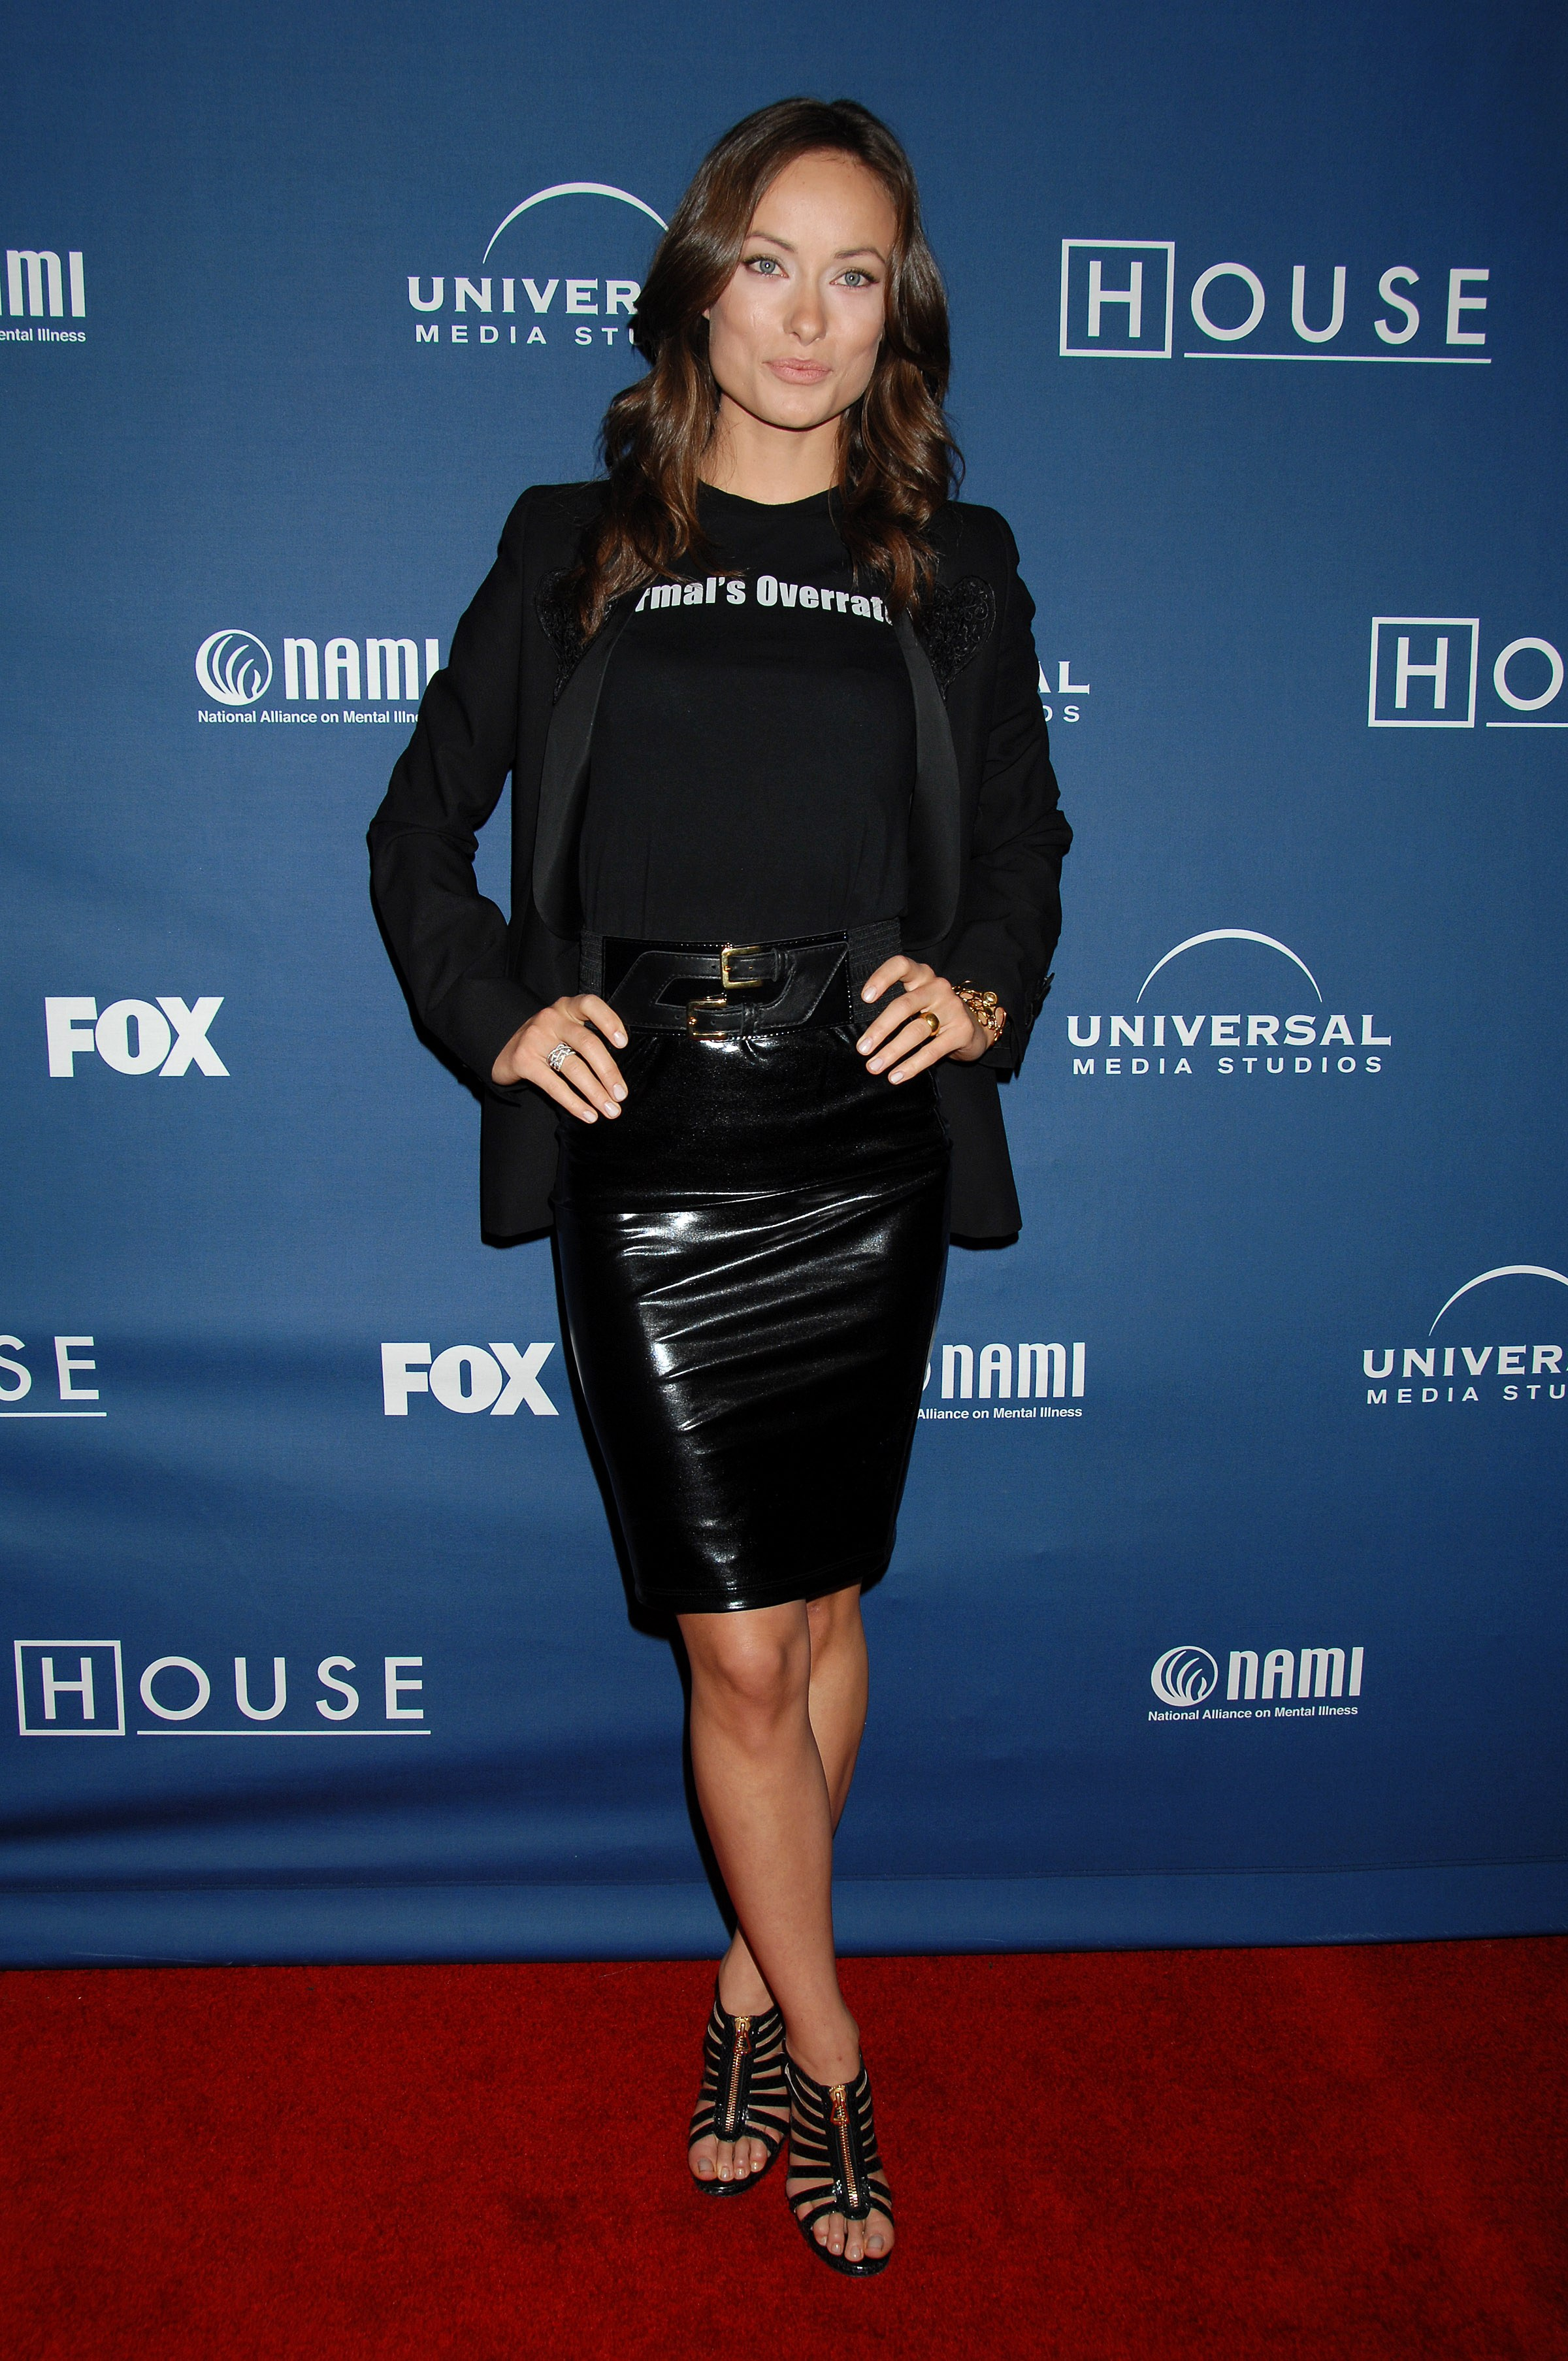 25847_Olivia_Wilde-_Party_in_celebration_of_the_100th_episode_CU_ISA_03_122_681lo.jpg